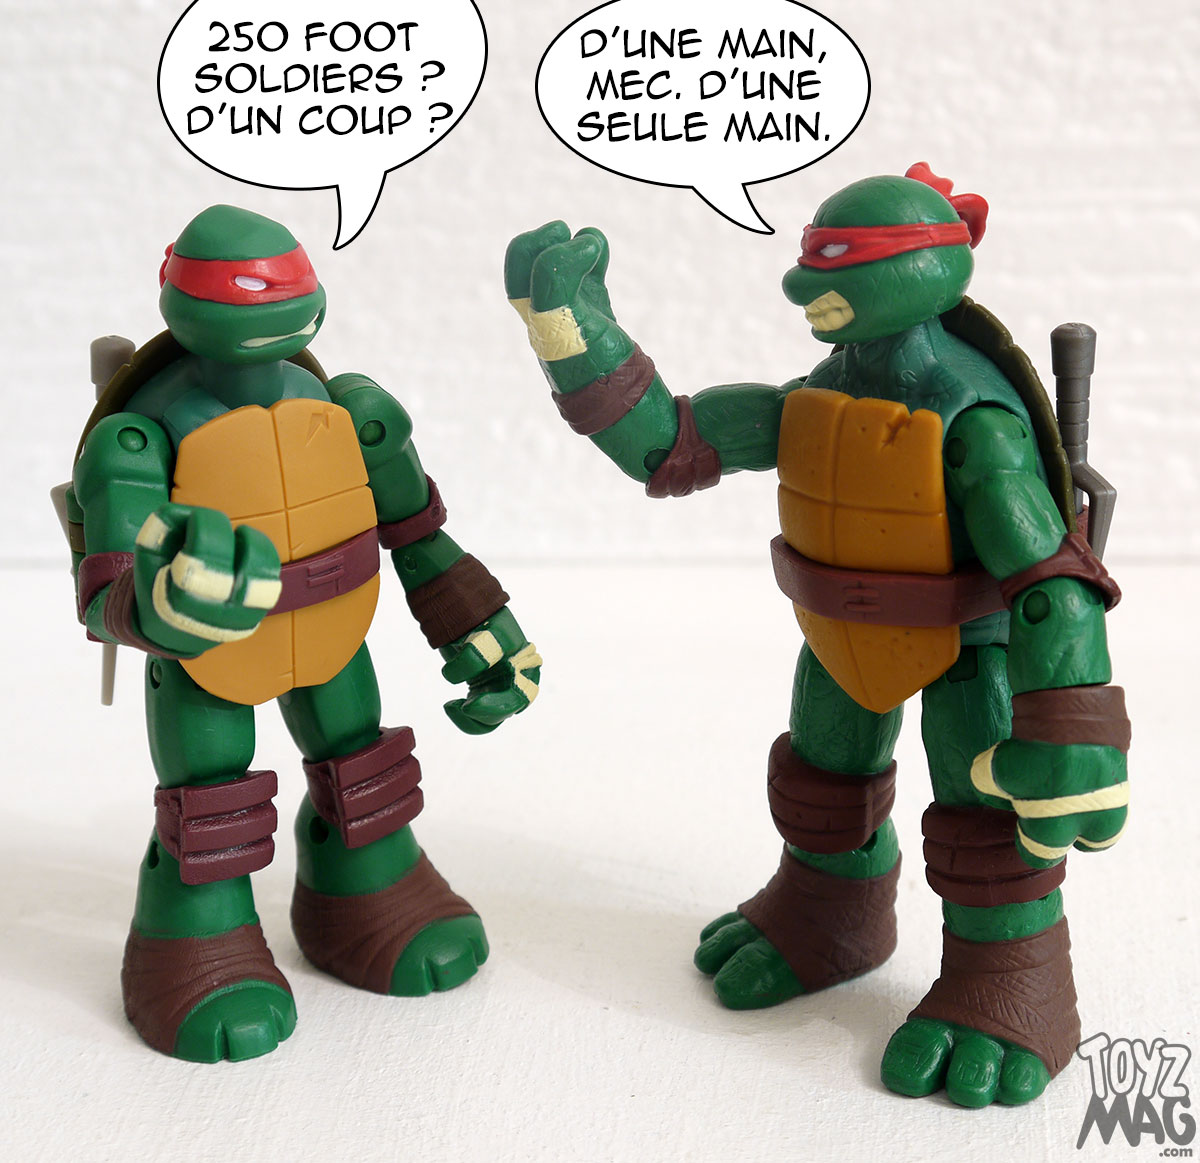 Occasion/Soldes  Lot De 2 Figurines Tortue Ninja 32cm  Priceminister, Fnac,